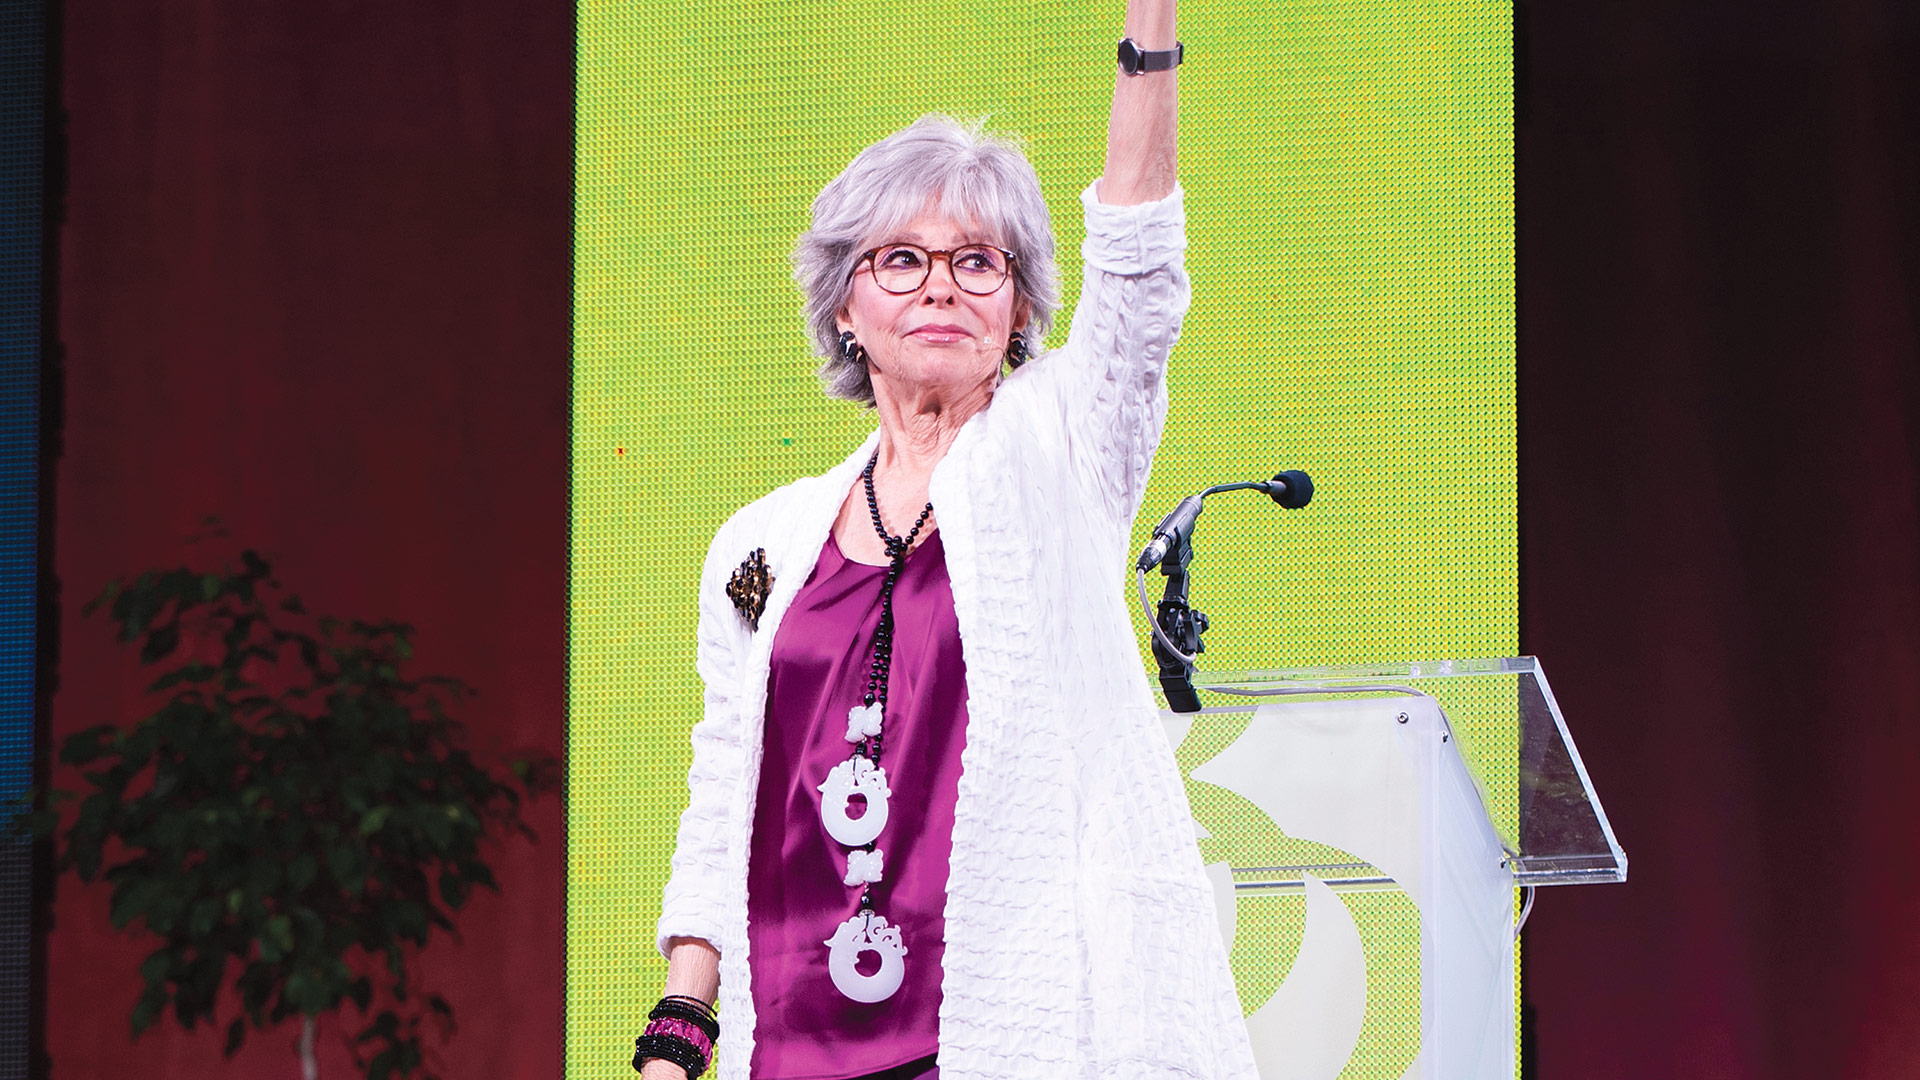 Rita Moreno, winner of an Emmy, Grammy, Oscar, Tony, and Golden Globe, was the closing keynote speaker at the conference